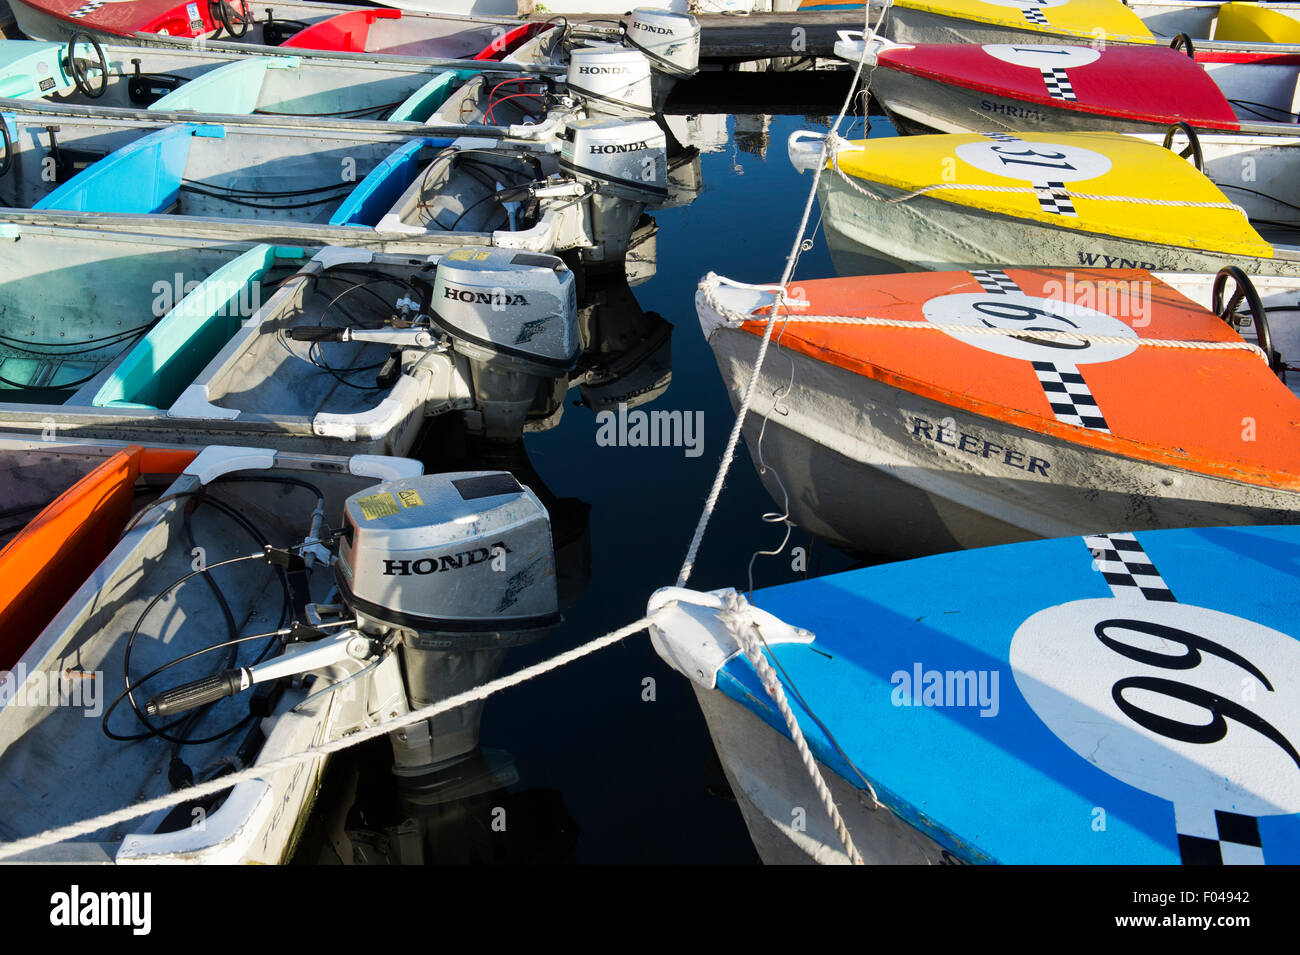 Hire outboard motorboats on the river in the early morning light at Henley on Thames, Oxfordshire, England - Stock Image